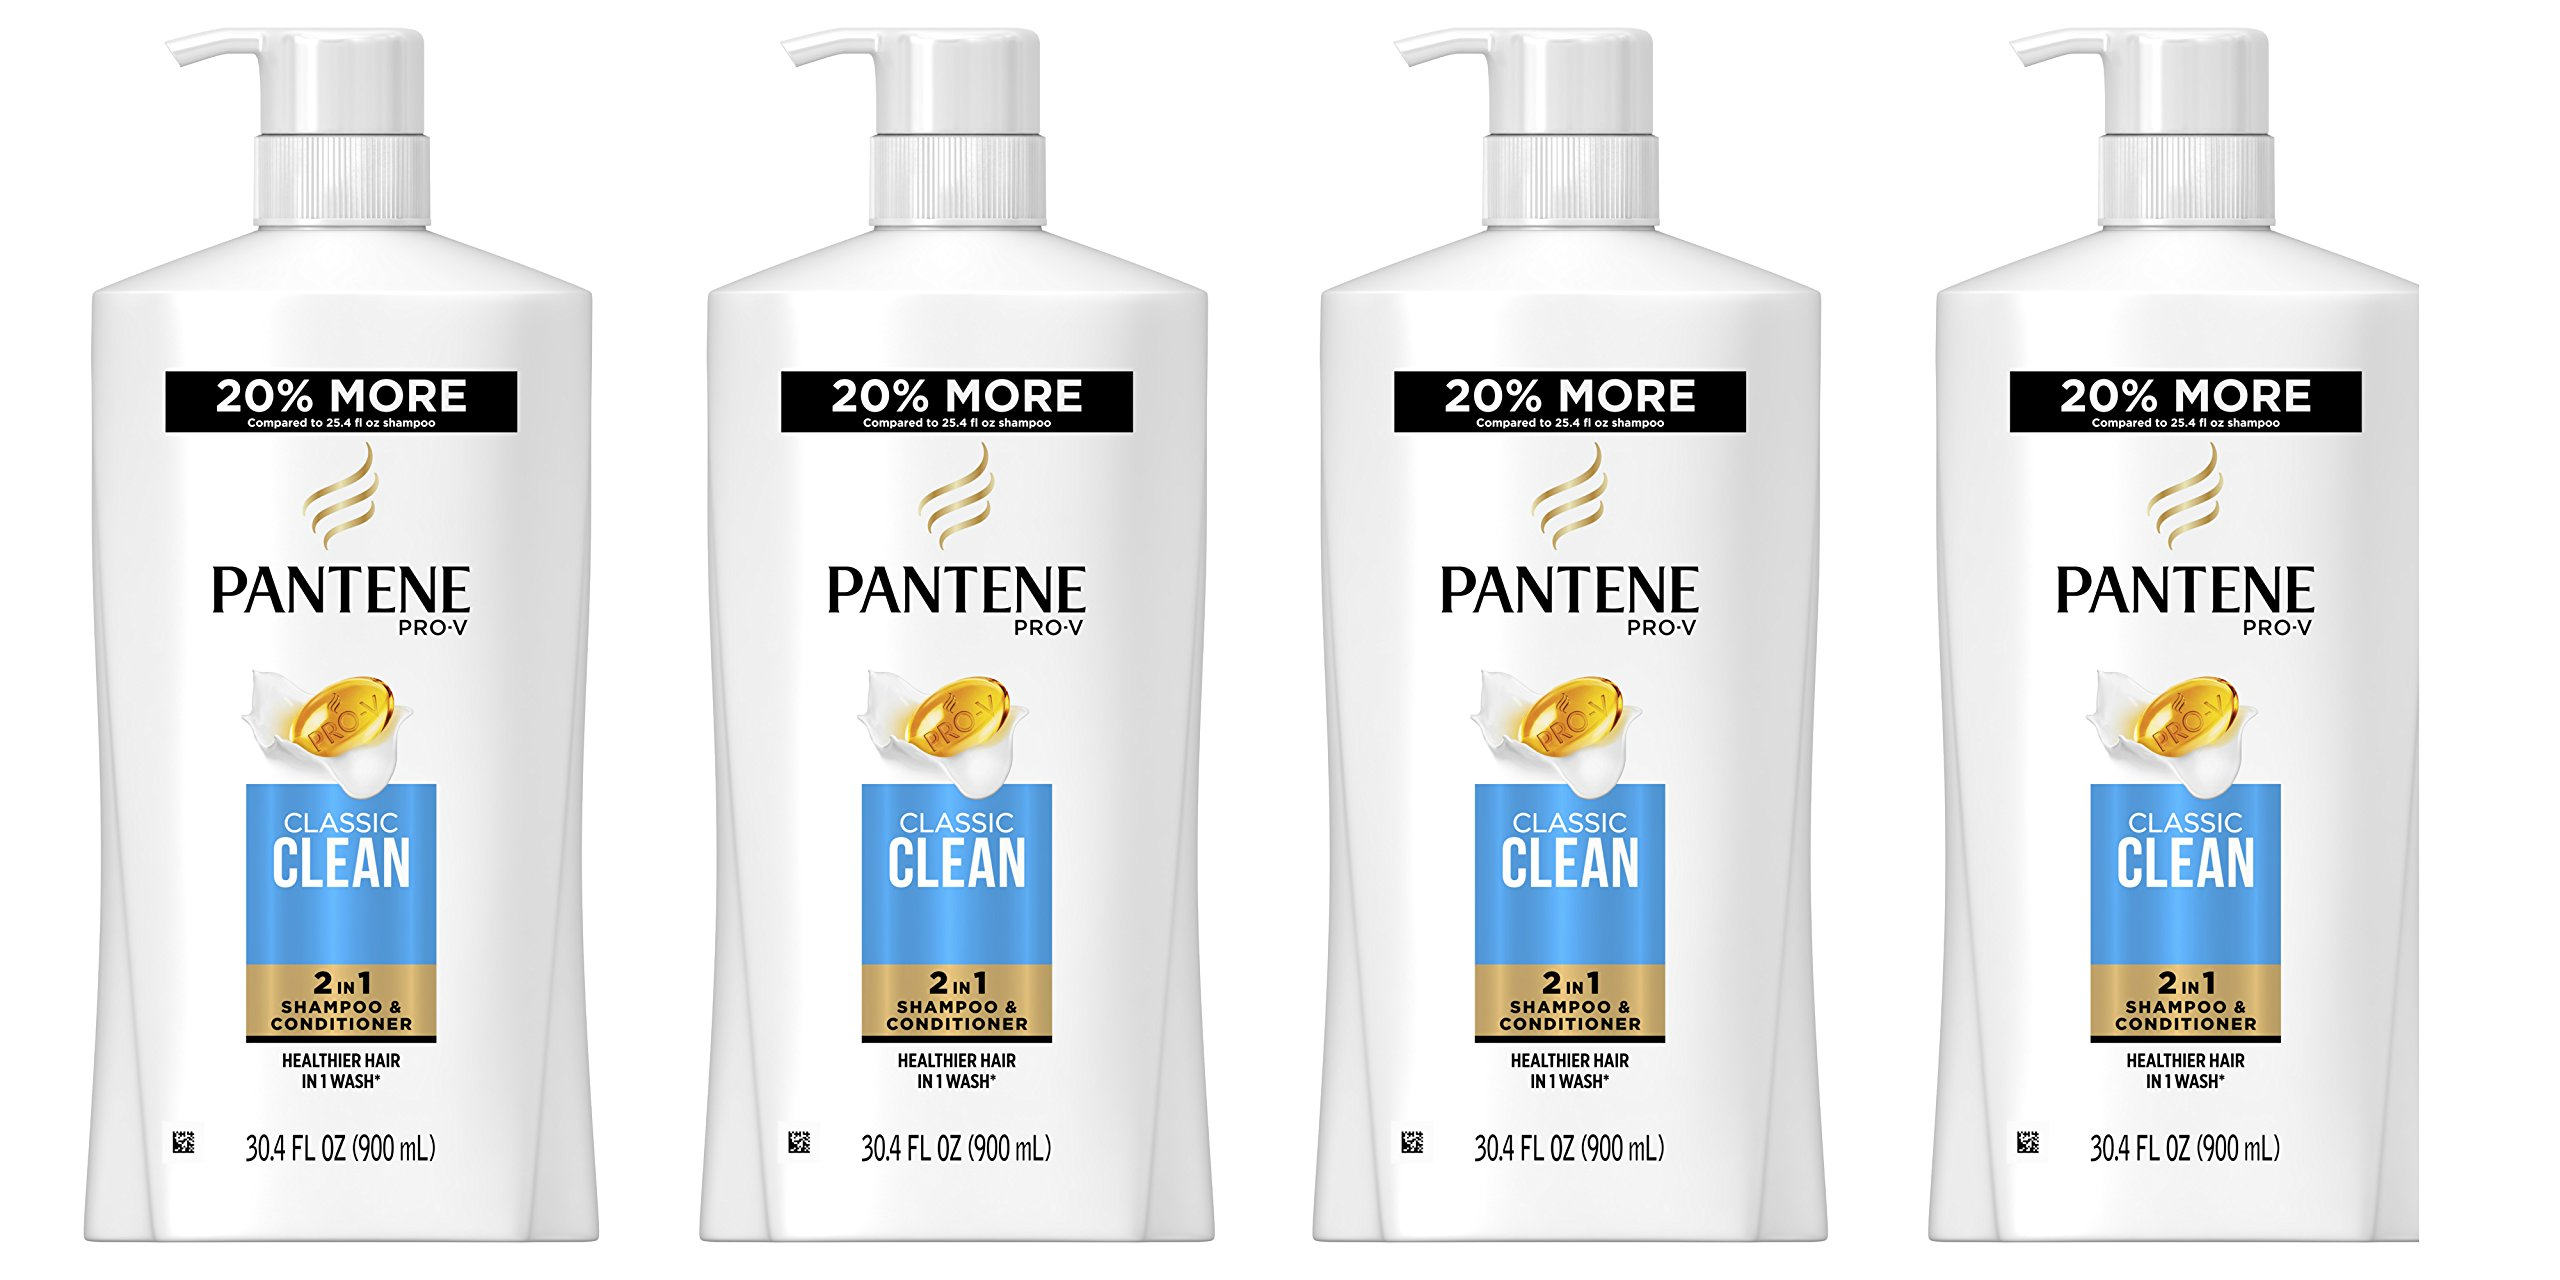 Pantene Pro-V Classic Clean 2-in-1 Shampoo and Conditioner, 30.4 Fluid Ounce (Pack of 4) (Packaging May Vary) by Pantene